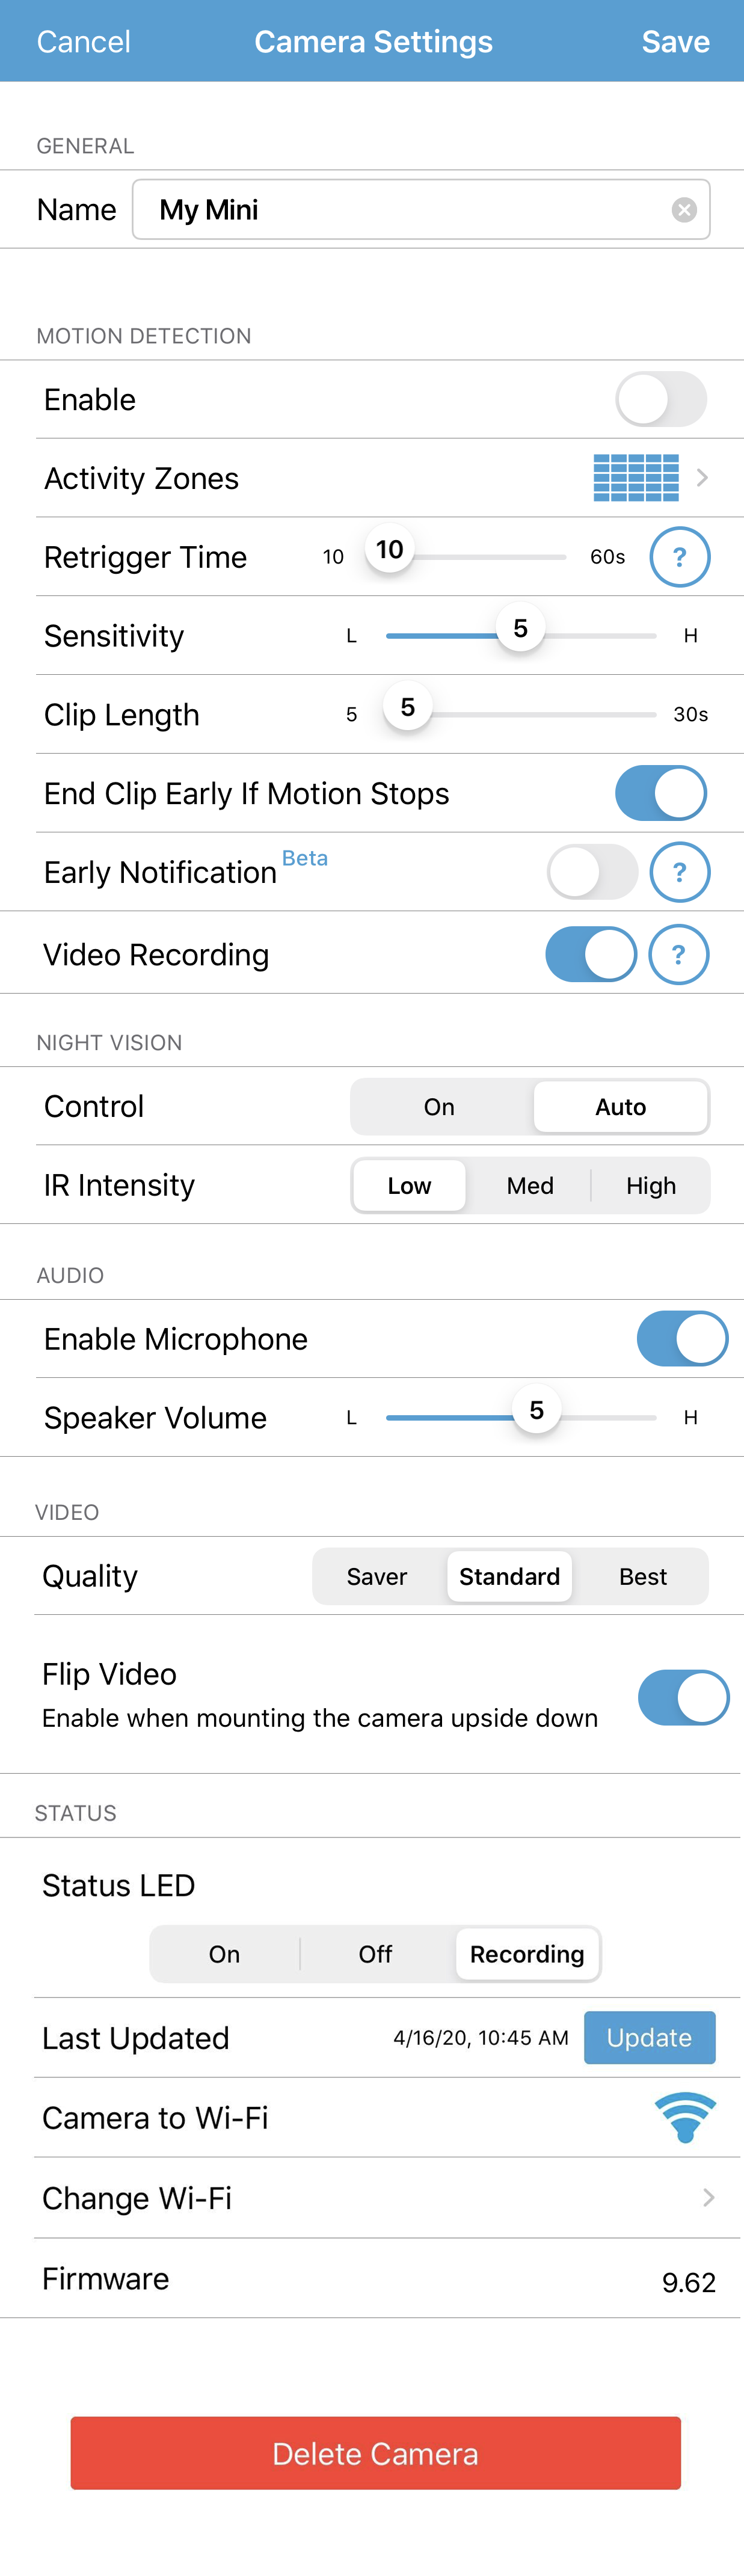 Settings page for Mini cameras